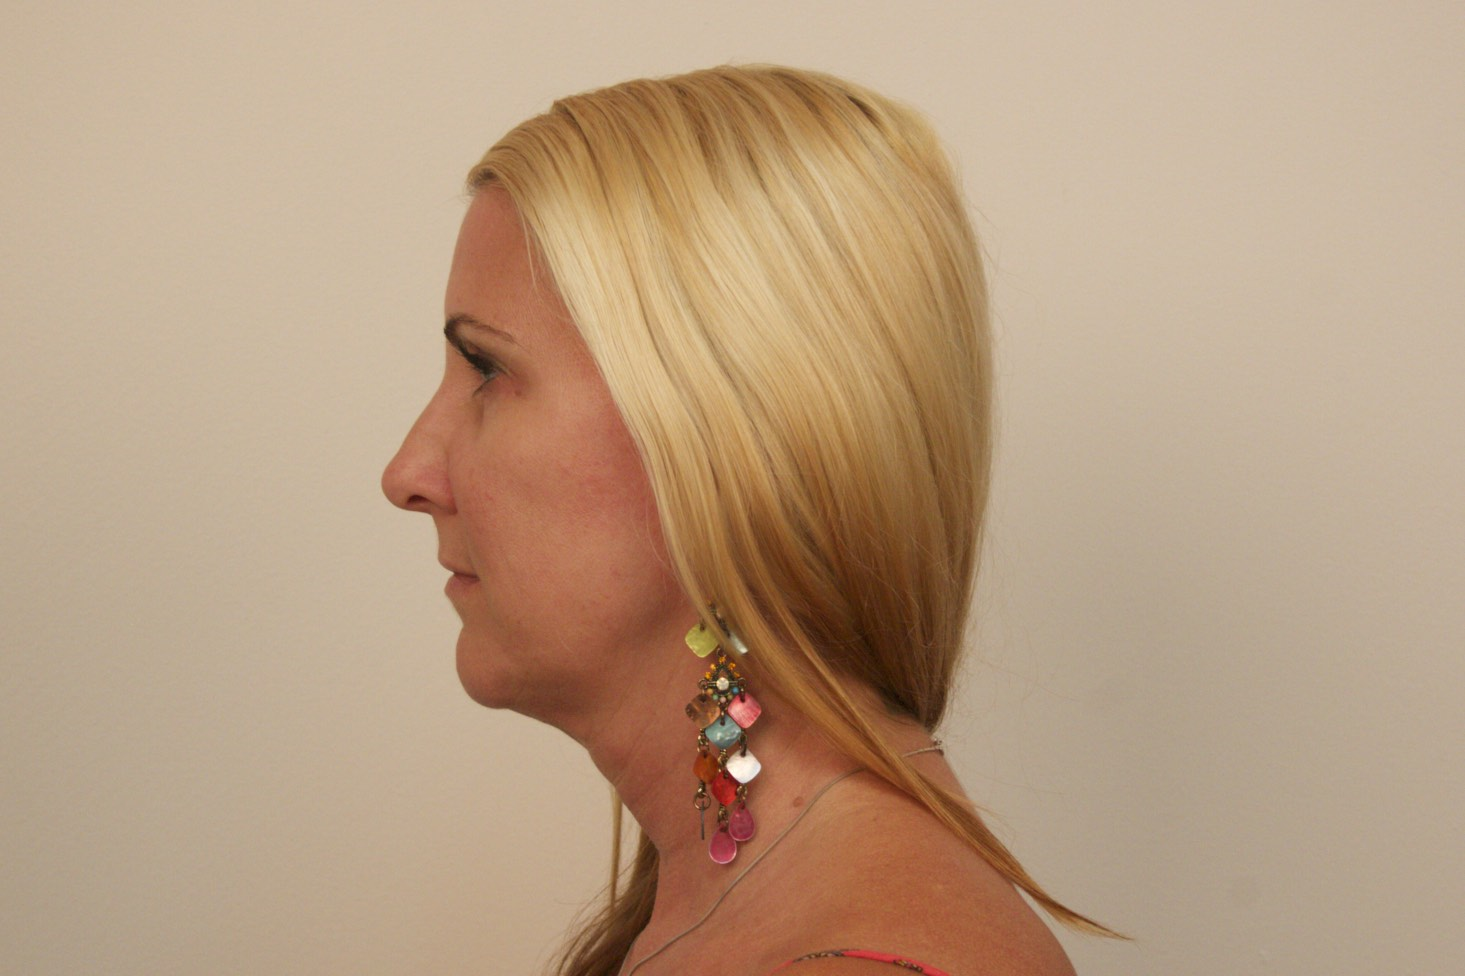 Patient after Kybella treatment